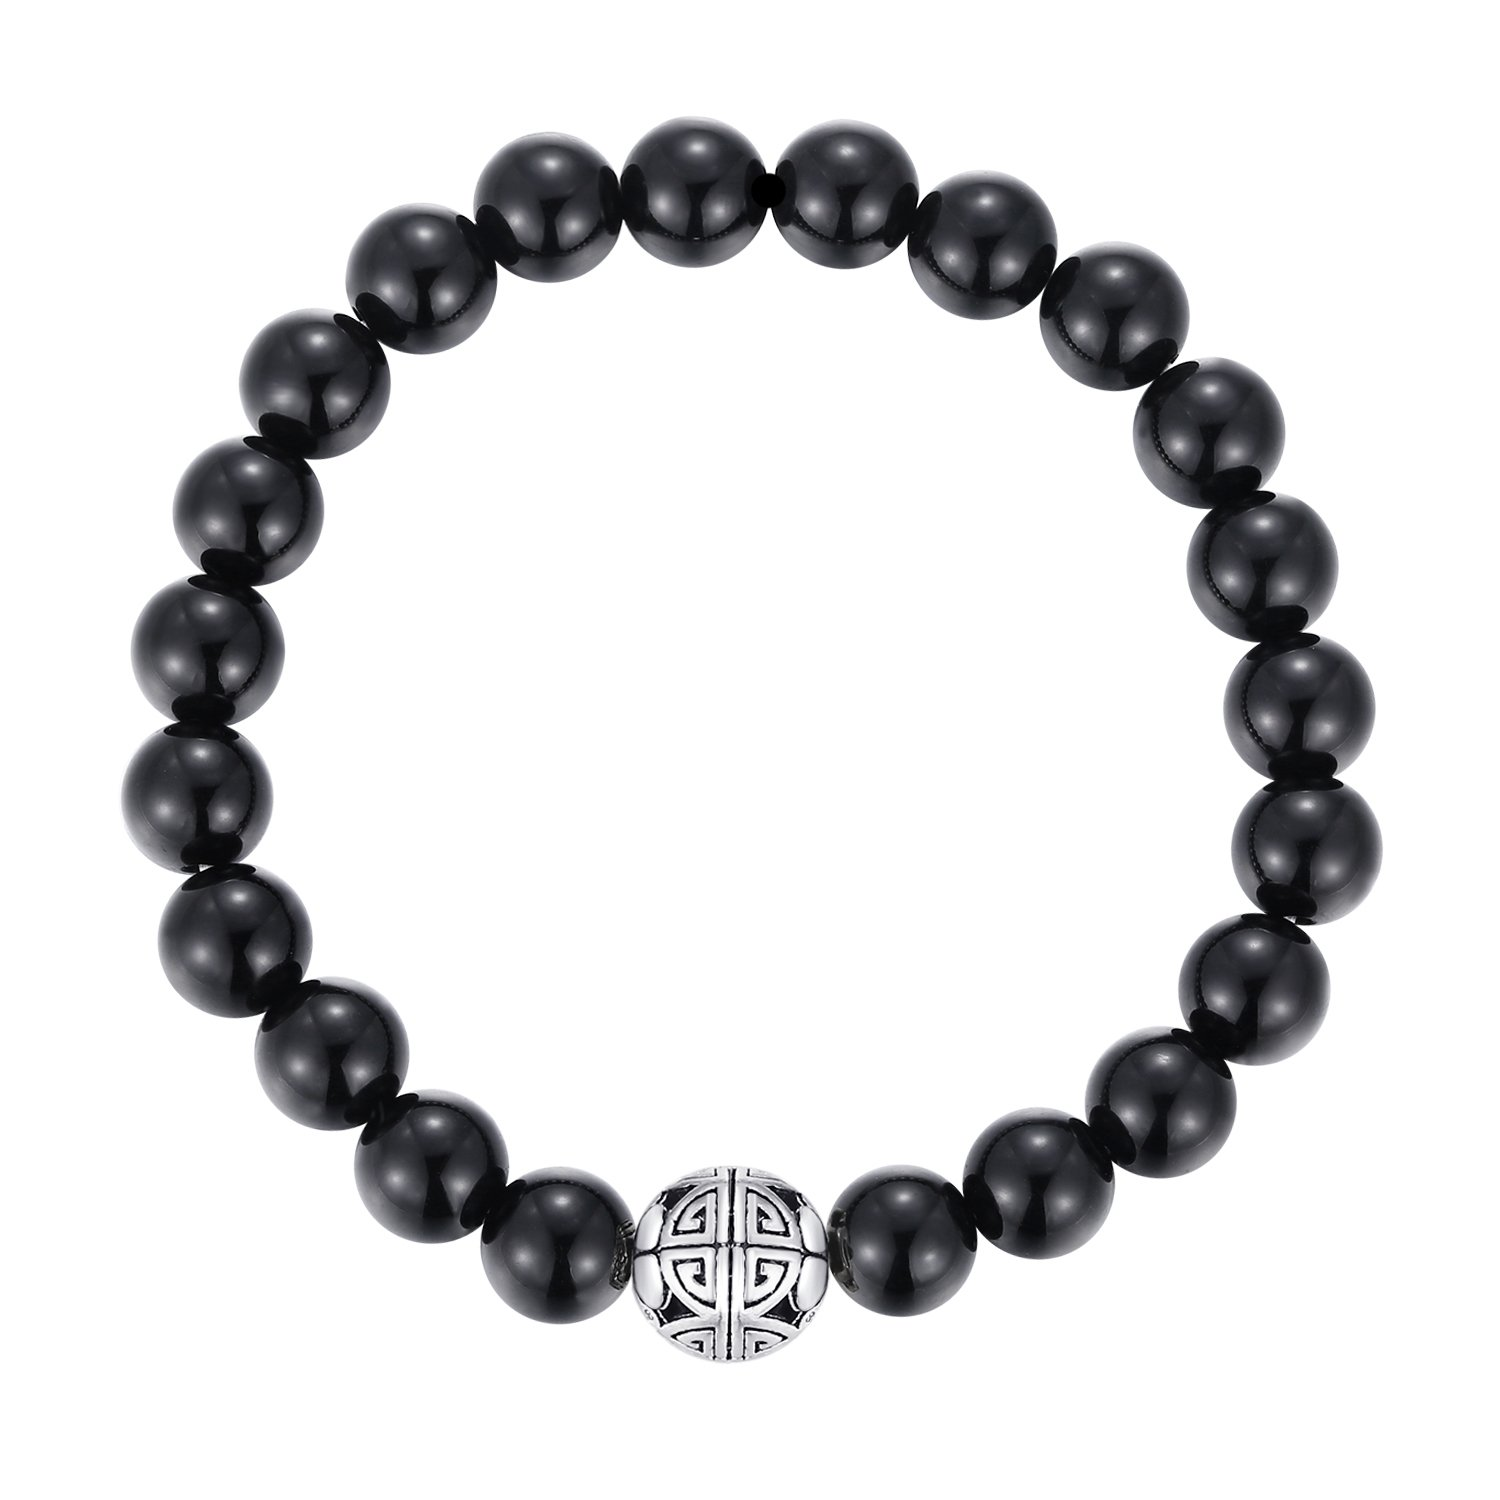 Natural 8mm Gorgeous Men Women Semi-Precious Gemstones Healing Crystal Stretch Beaded Bracelet Unisex Bangle with 925 Sterling Silver Double Happiness Pendant (Black Agate)